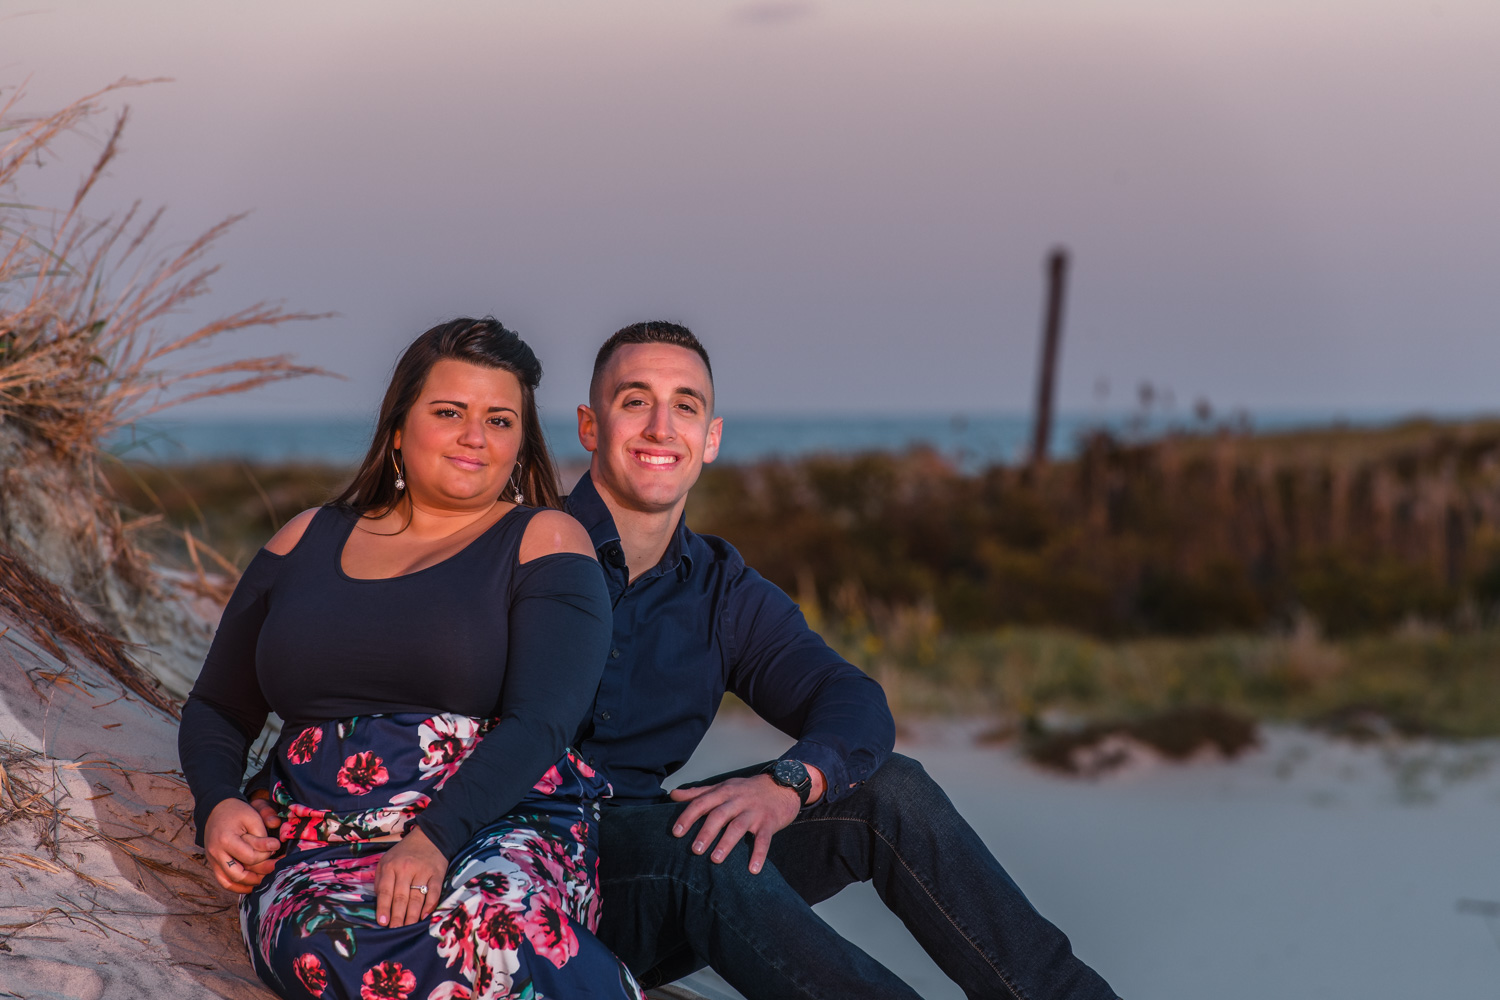 lbi-wedding-photographer-lbi-engagement-dan-beckie--20.jpg